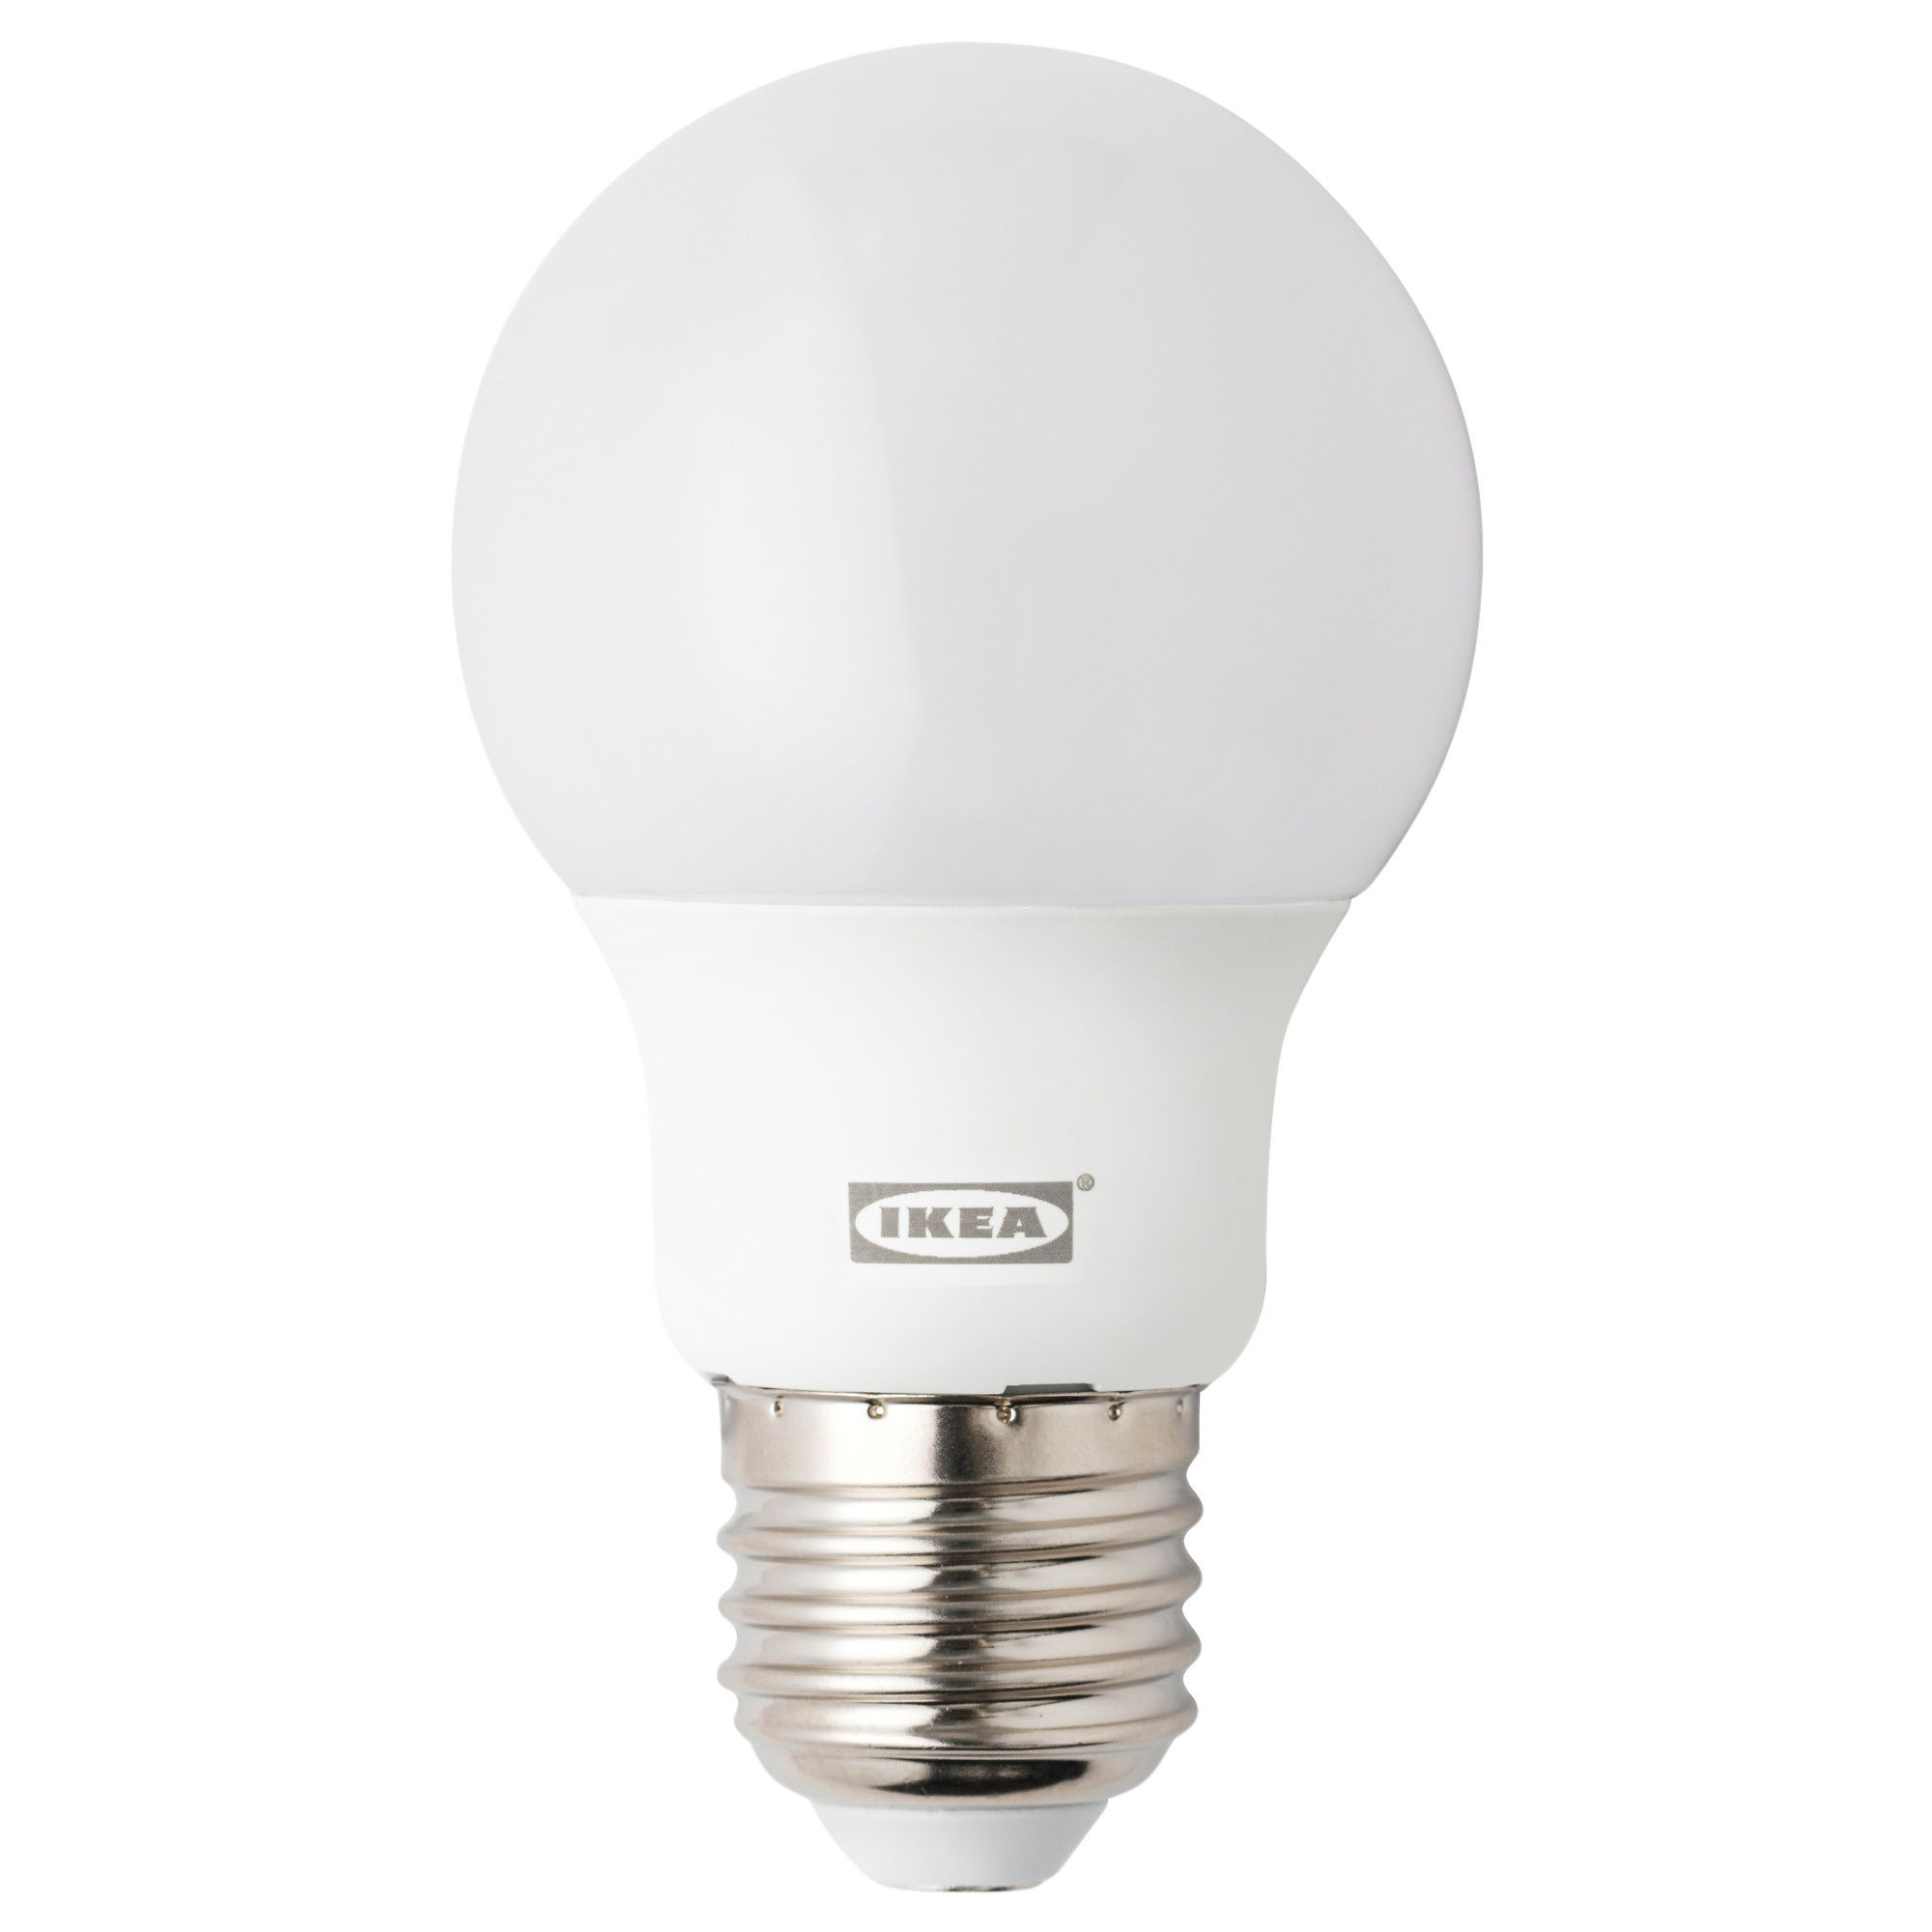 Ryet Led Bulbs Ikea Ikea Light Bulbs Bulb Light Bulb